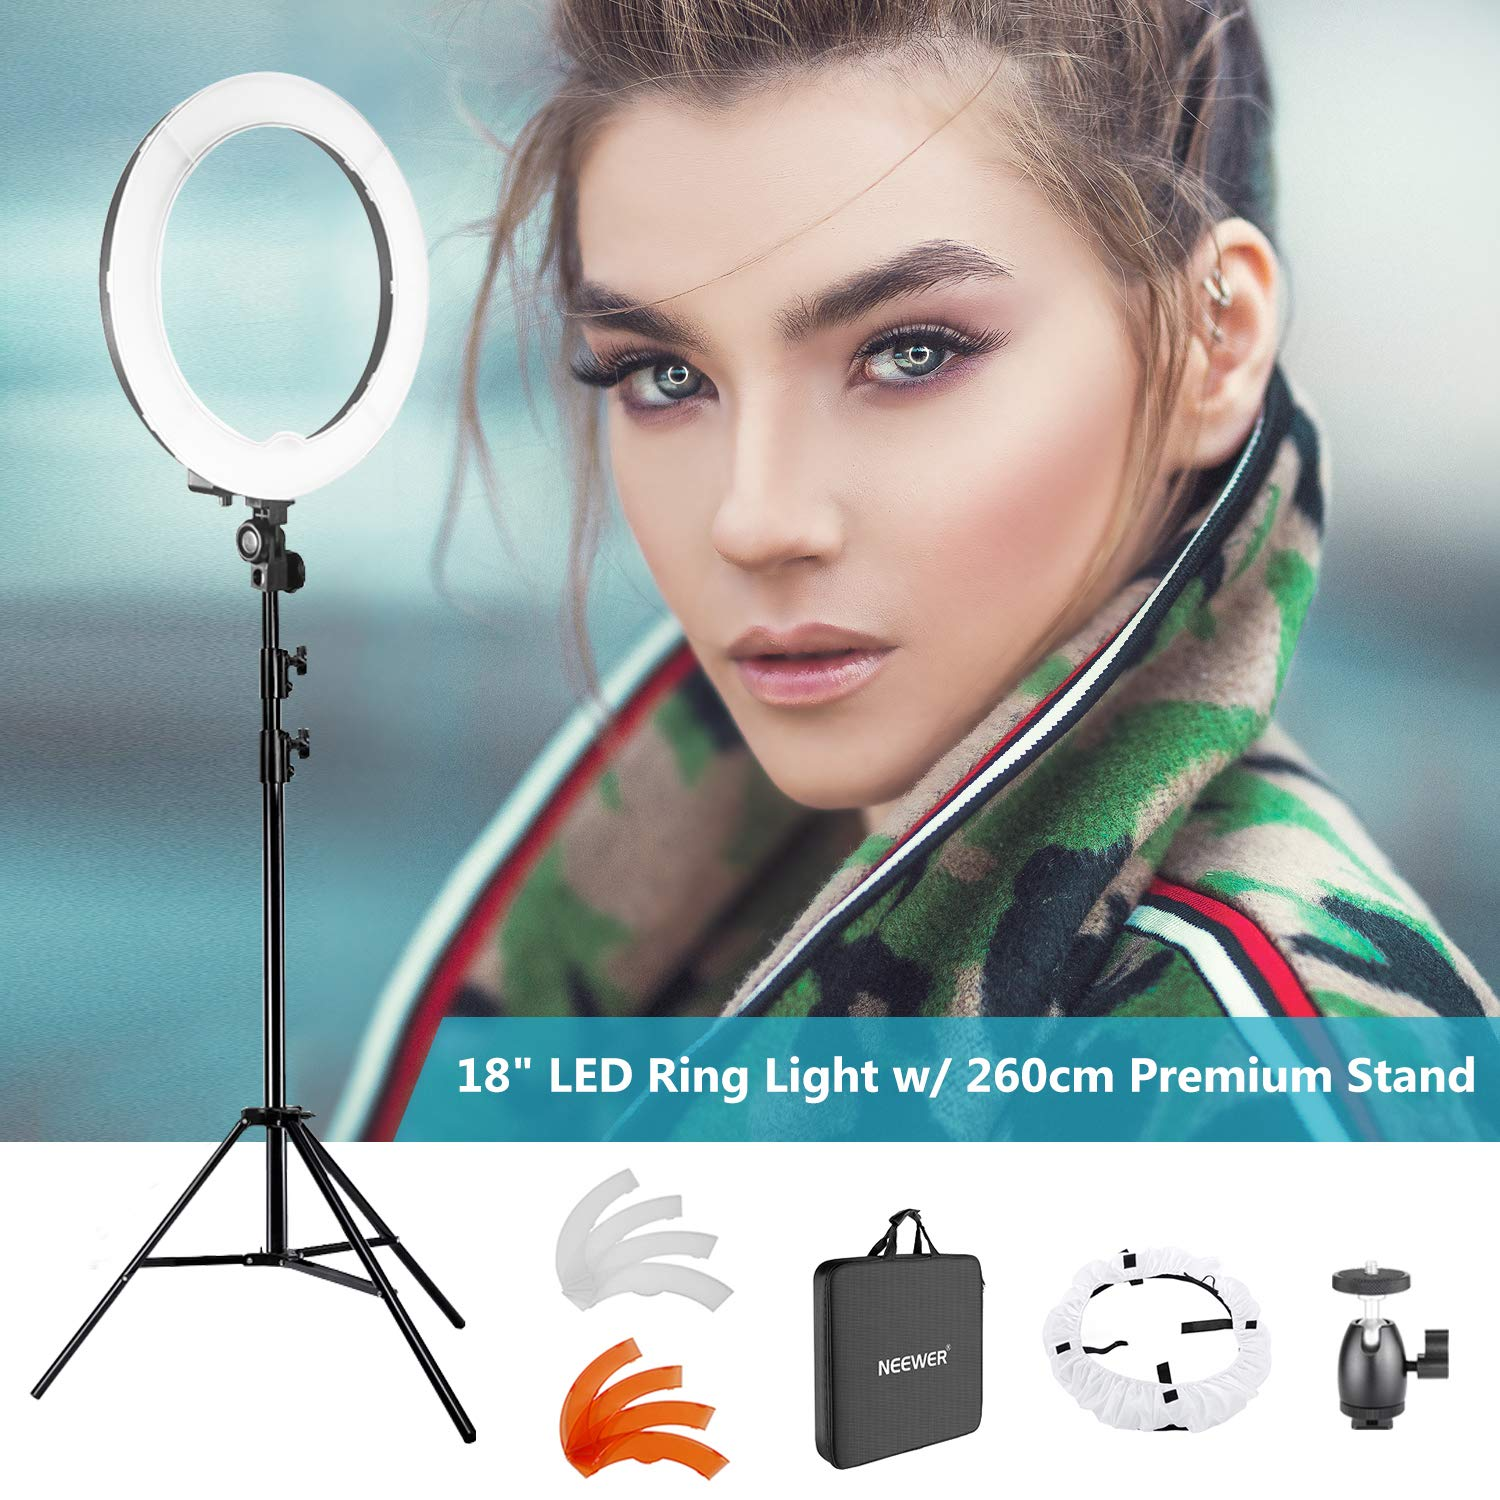 Neewer 18'' LED Ring Light Dimmable for Camera Photo Video,Make Up, YouTube, Portrait and Photography Lighting, Includes(1) Ring Light+(1) 9 Feet Heavy Duty Light Stand+(1) Soft & Orange Filter Set by Neewer